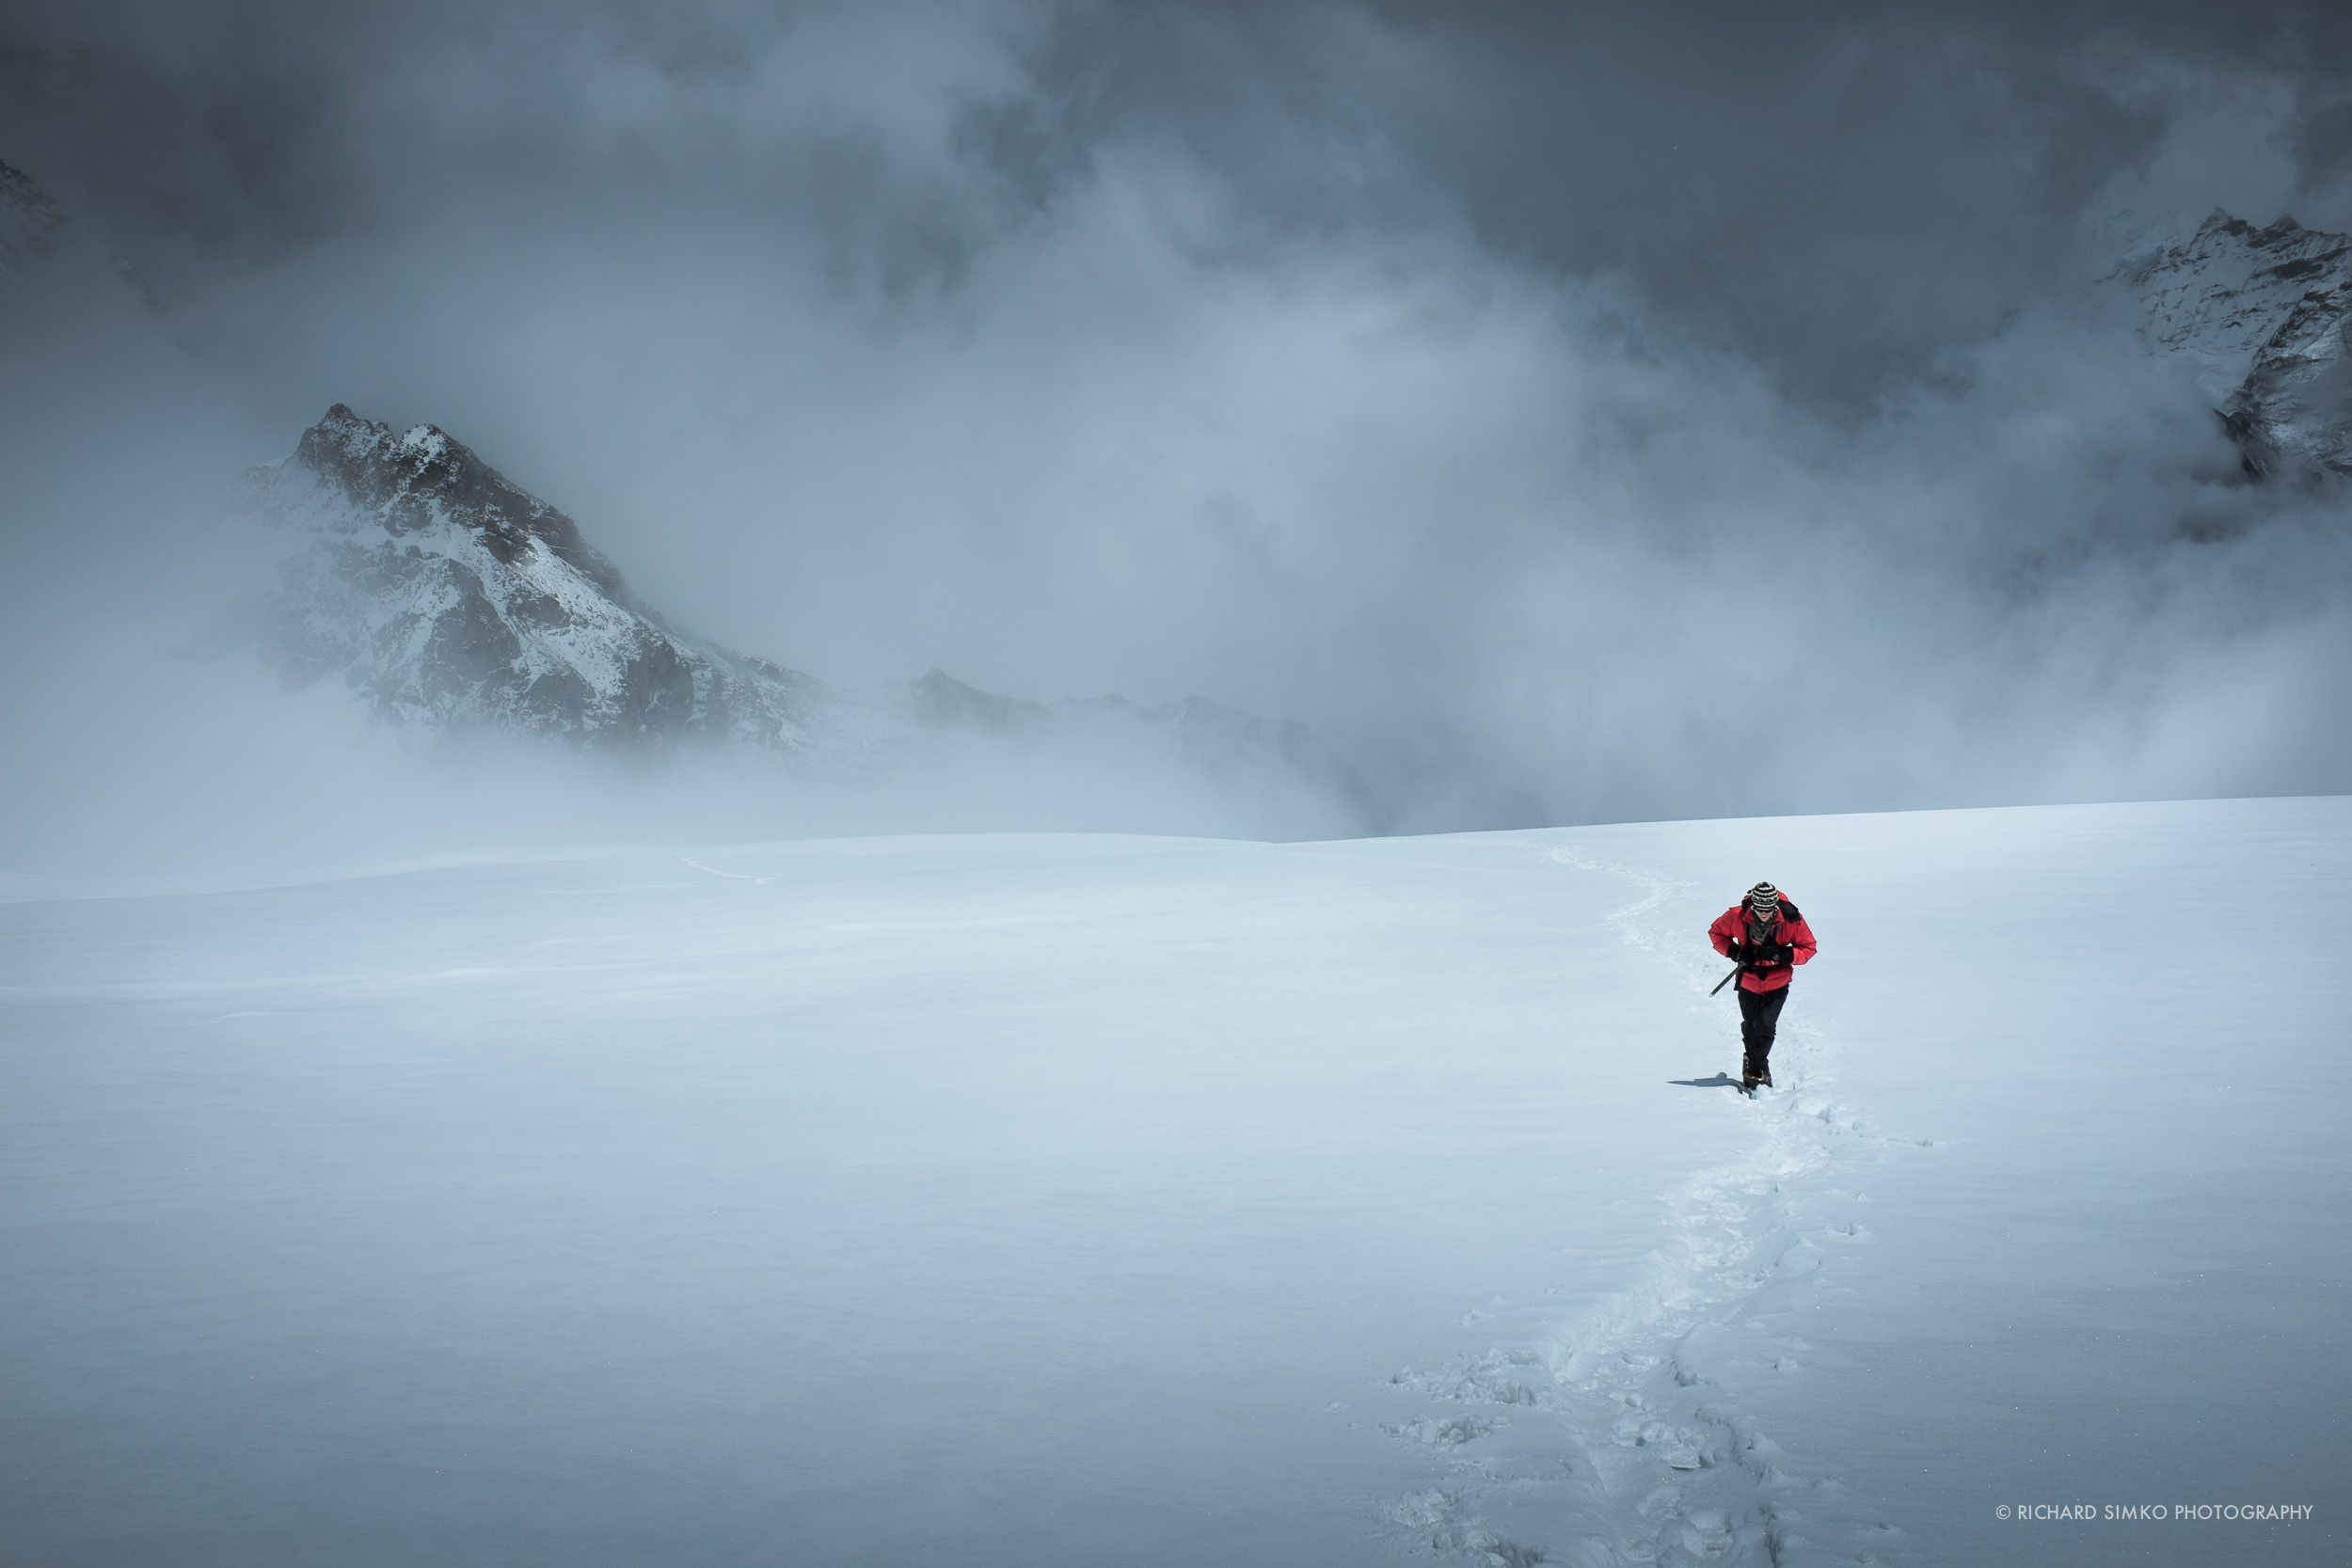 I am on the way to high camp. This photograph was taken by Ngawang Sherpa.